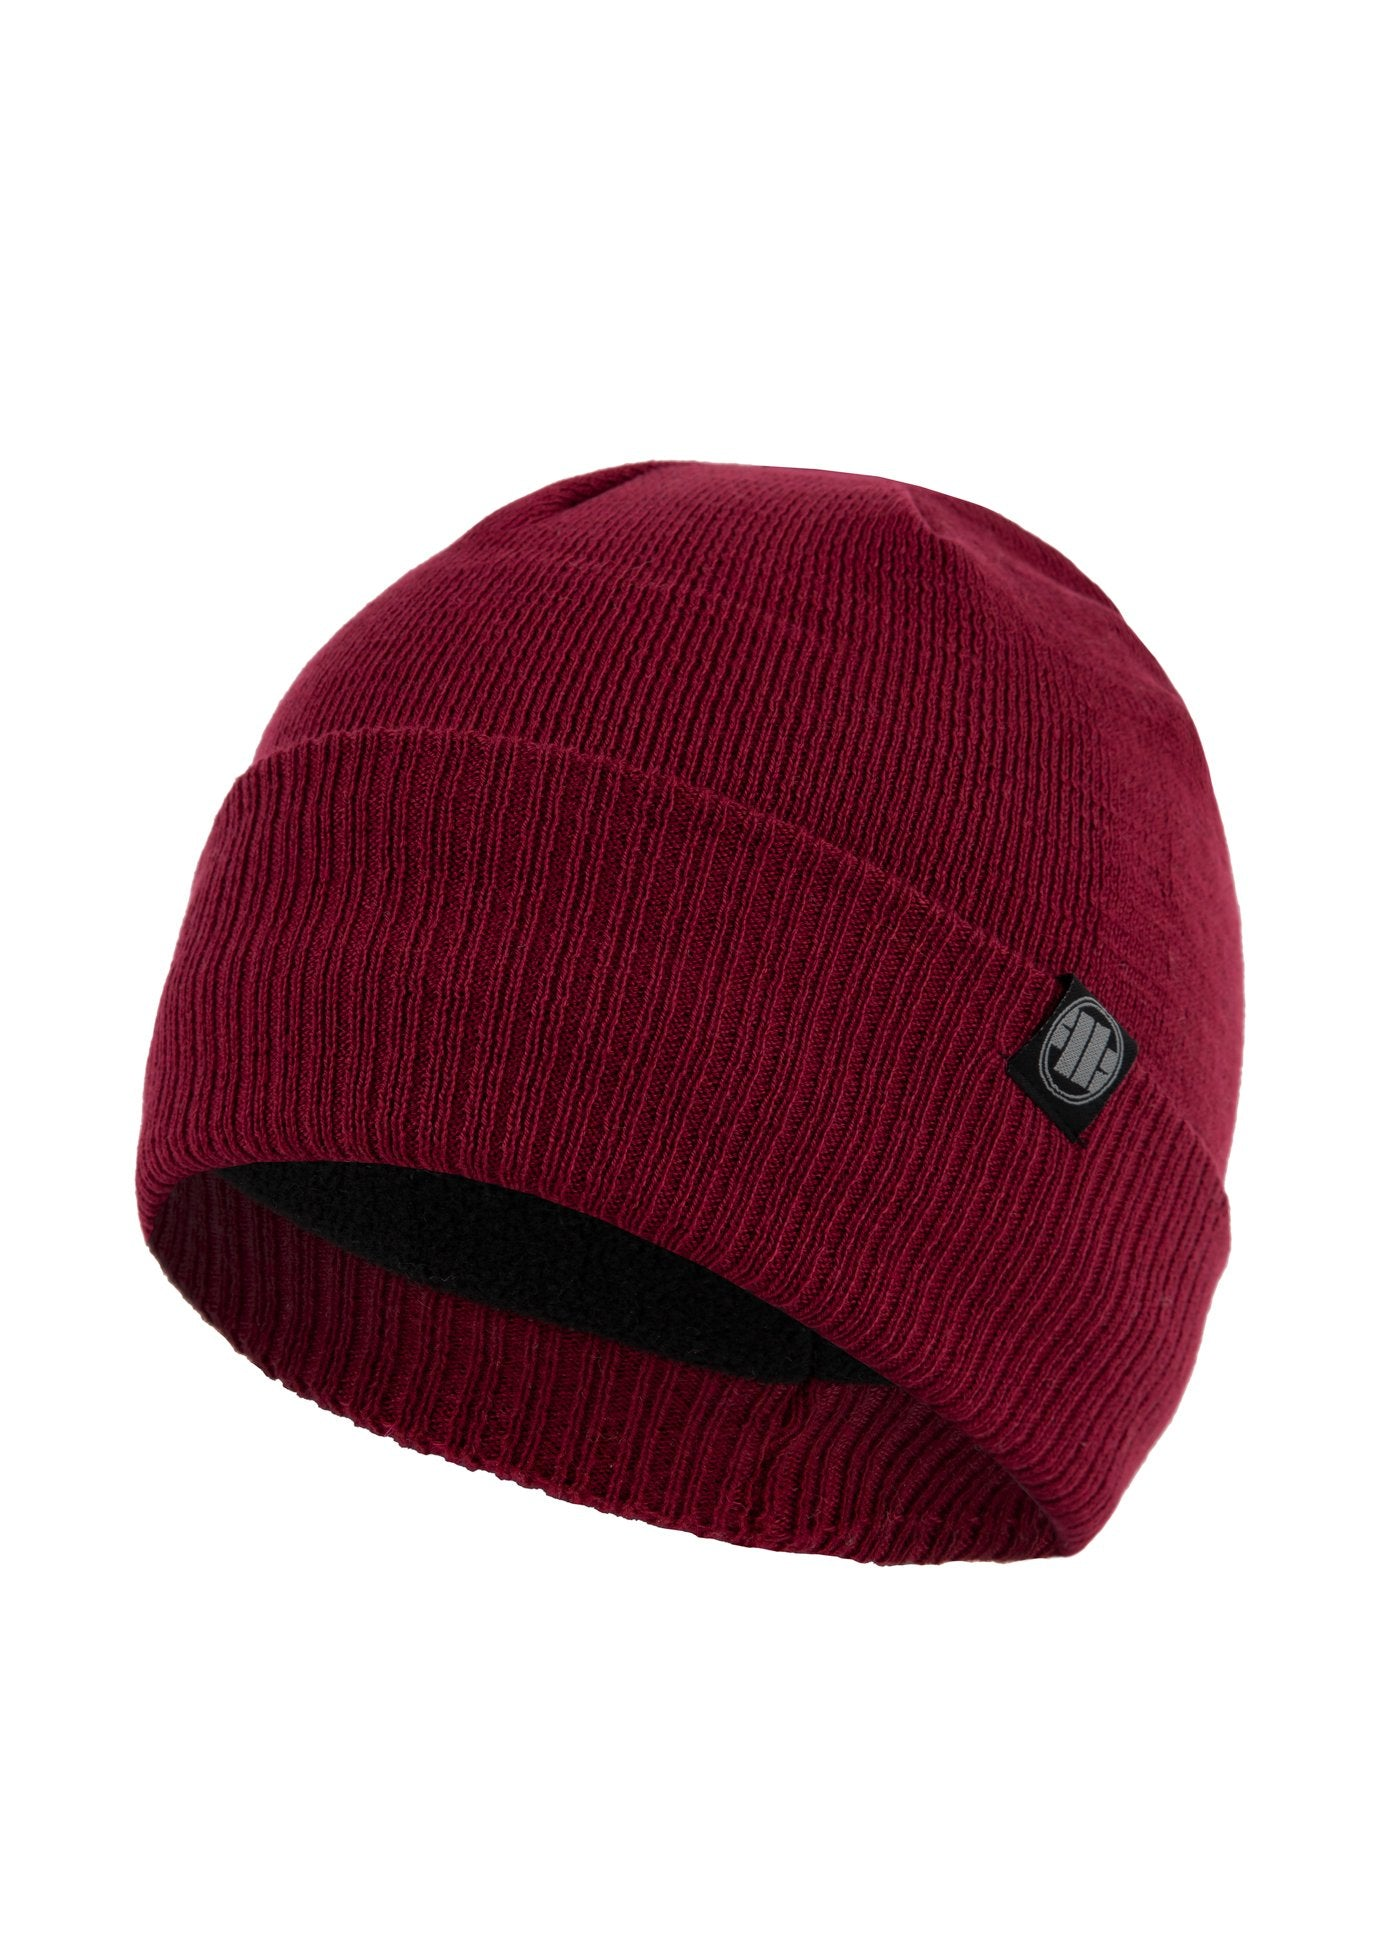 Winter Beanie SMALL LOGO Burgundy - Pitbull West Coast U.S.A.